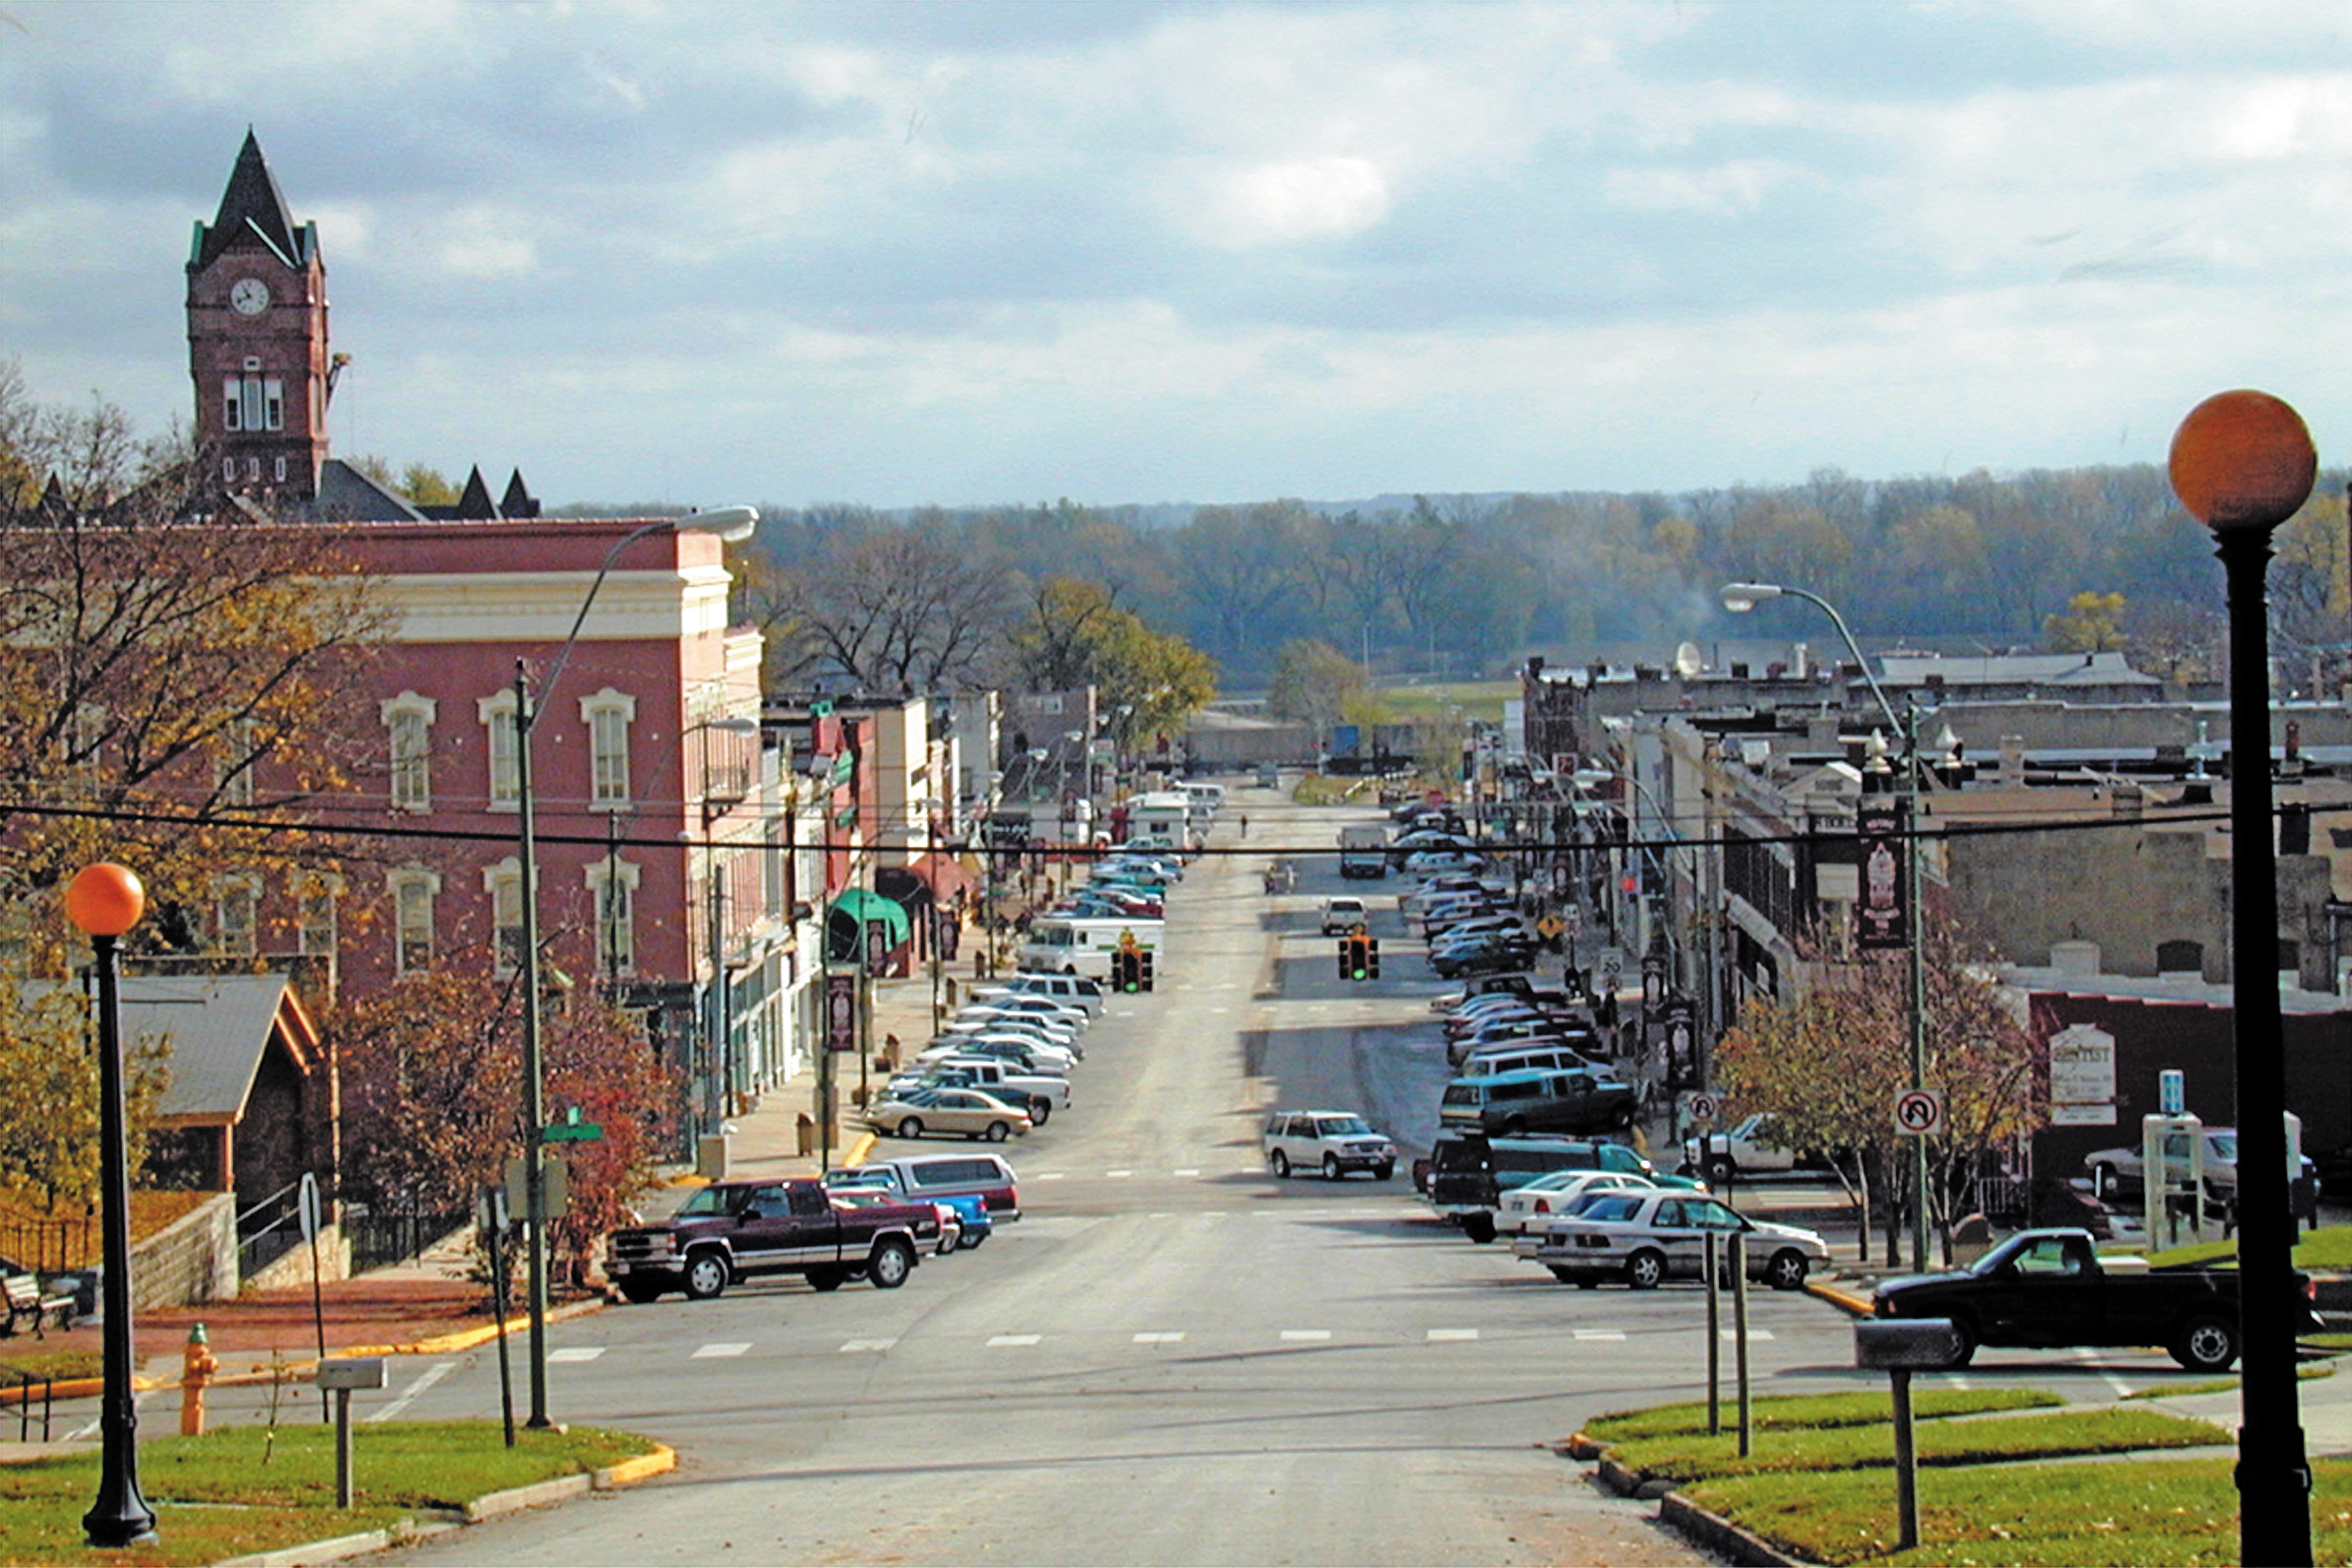 A view of Main Street in Plattsmouth, Nebraska